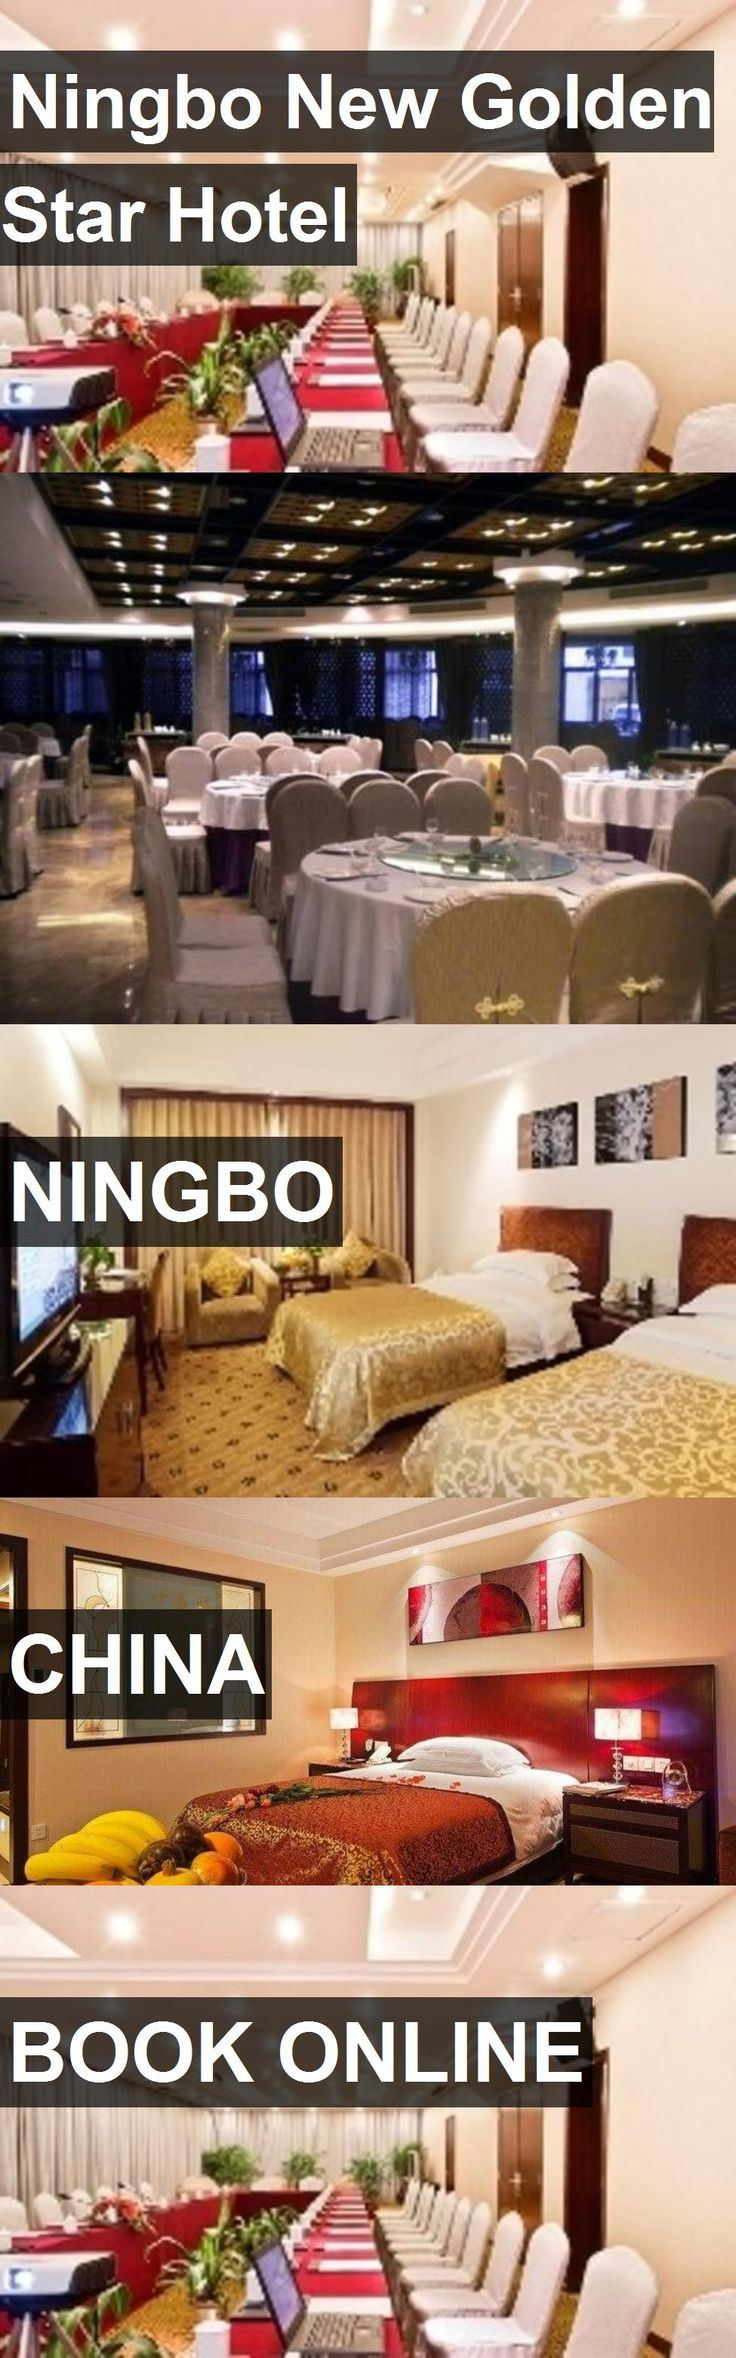 Ningbo New Golden Star Hotel in Ningbo, China. For more information, photos, reviews and best prices please follow the link. #China #Ningbo #travel #vacation #hotel